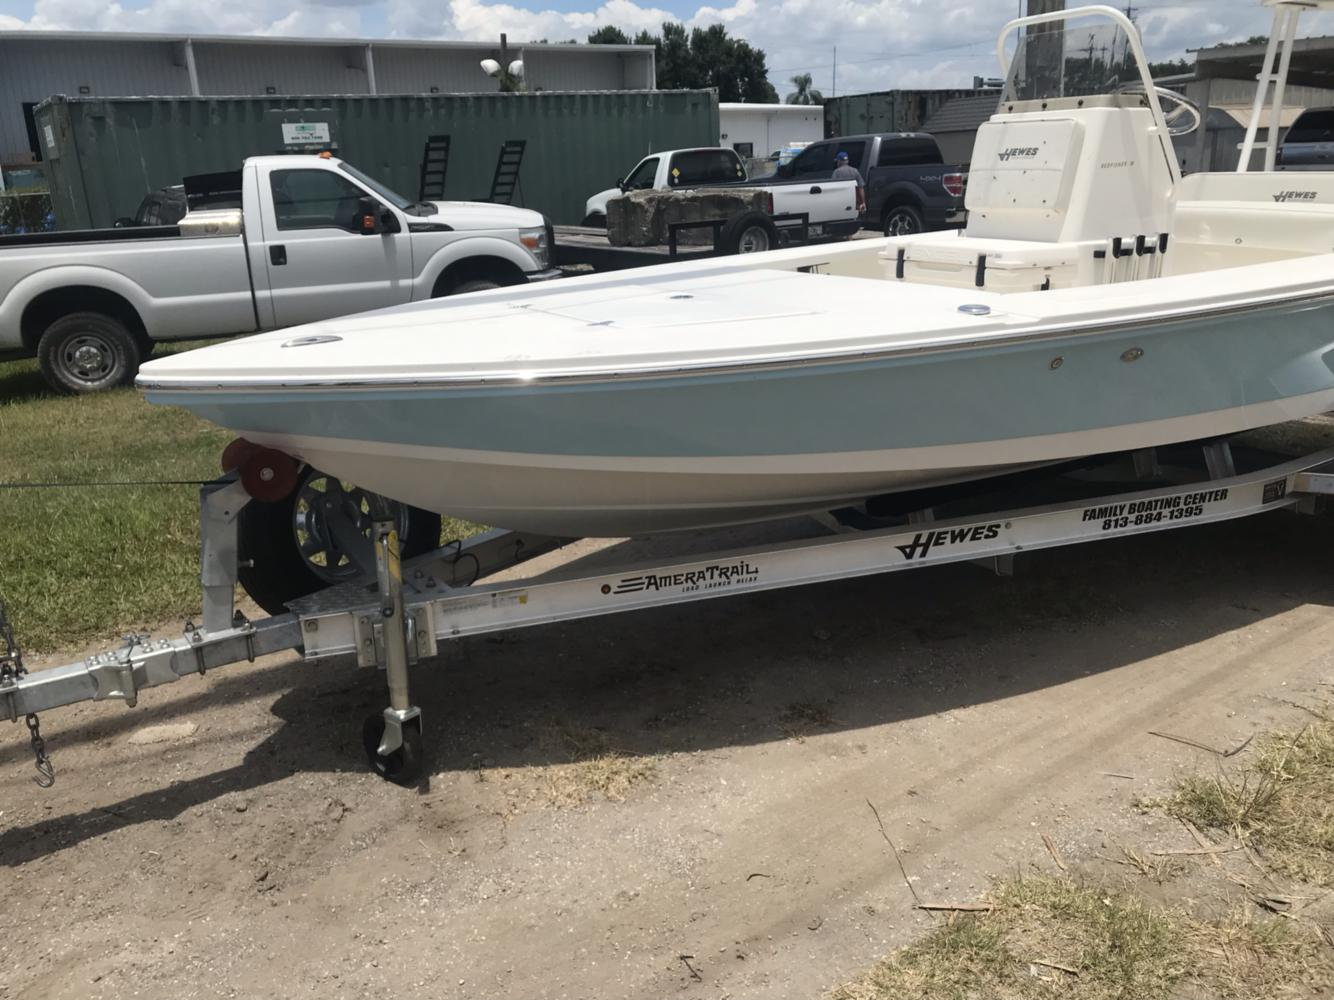 2019 Hewes Redfisher 18 for sale in Tampa, FL  Family Boating